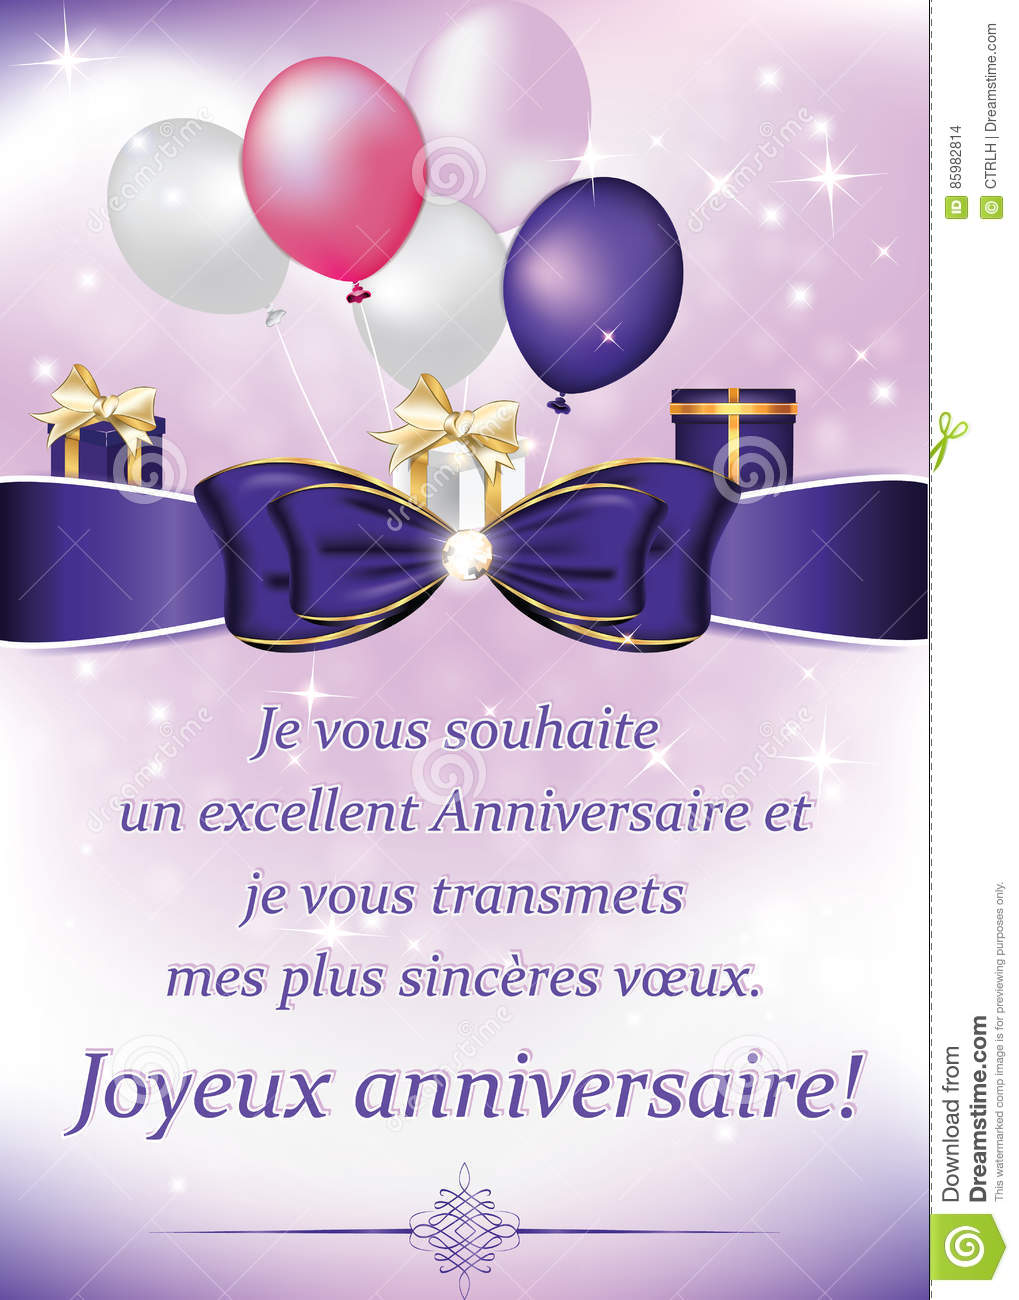 birthday card in french language ; french-birthday-greeting-card-balloons-gifts-i-wish-you-excellent-anniversary-wish-you-all-best-happy-85982814